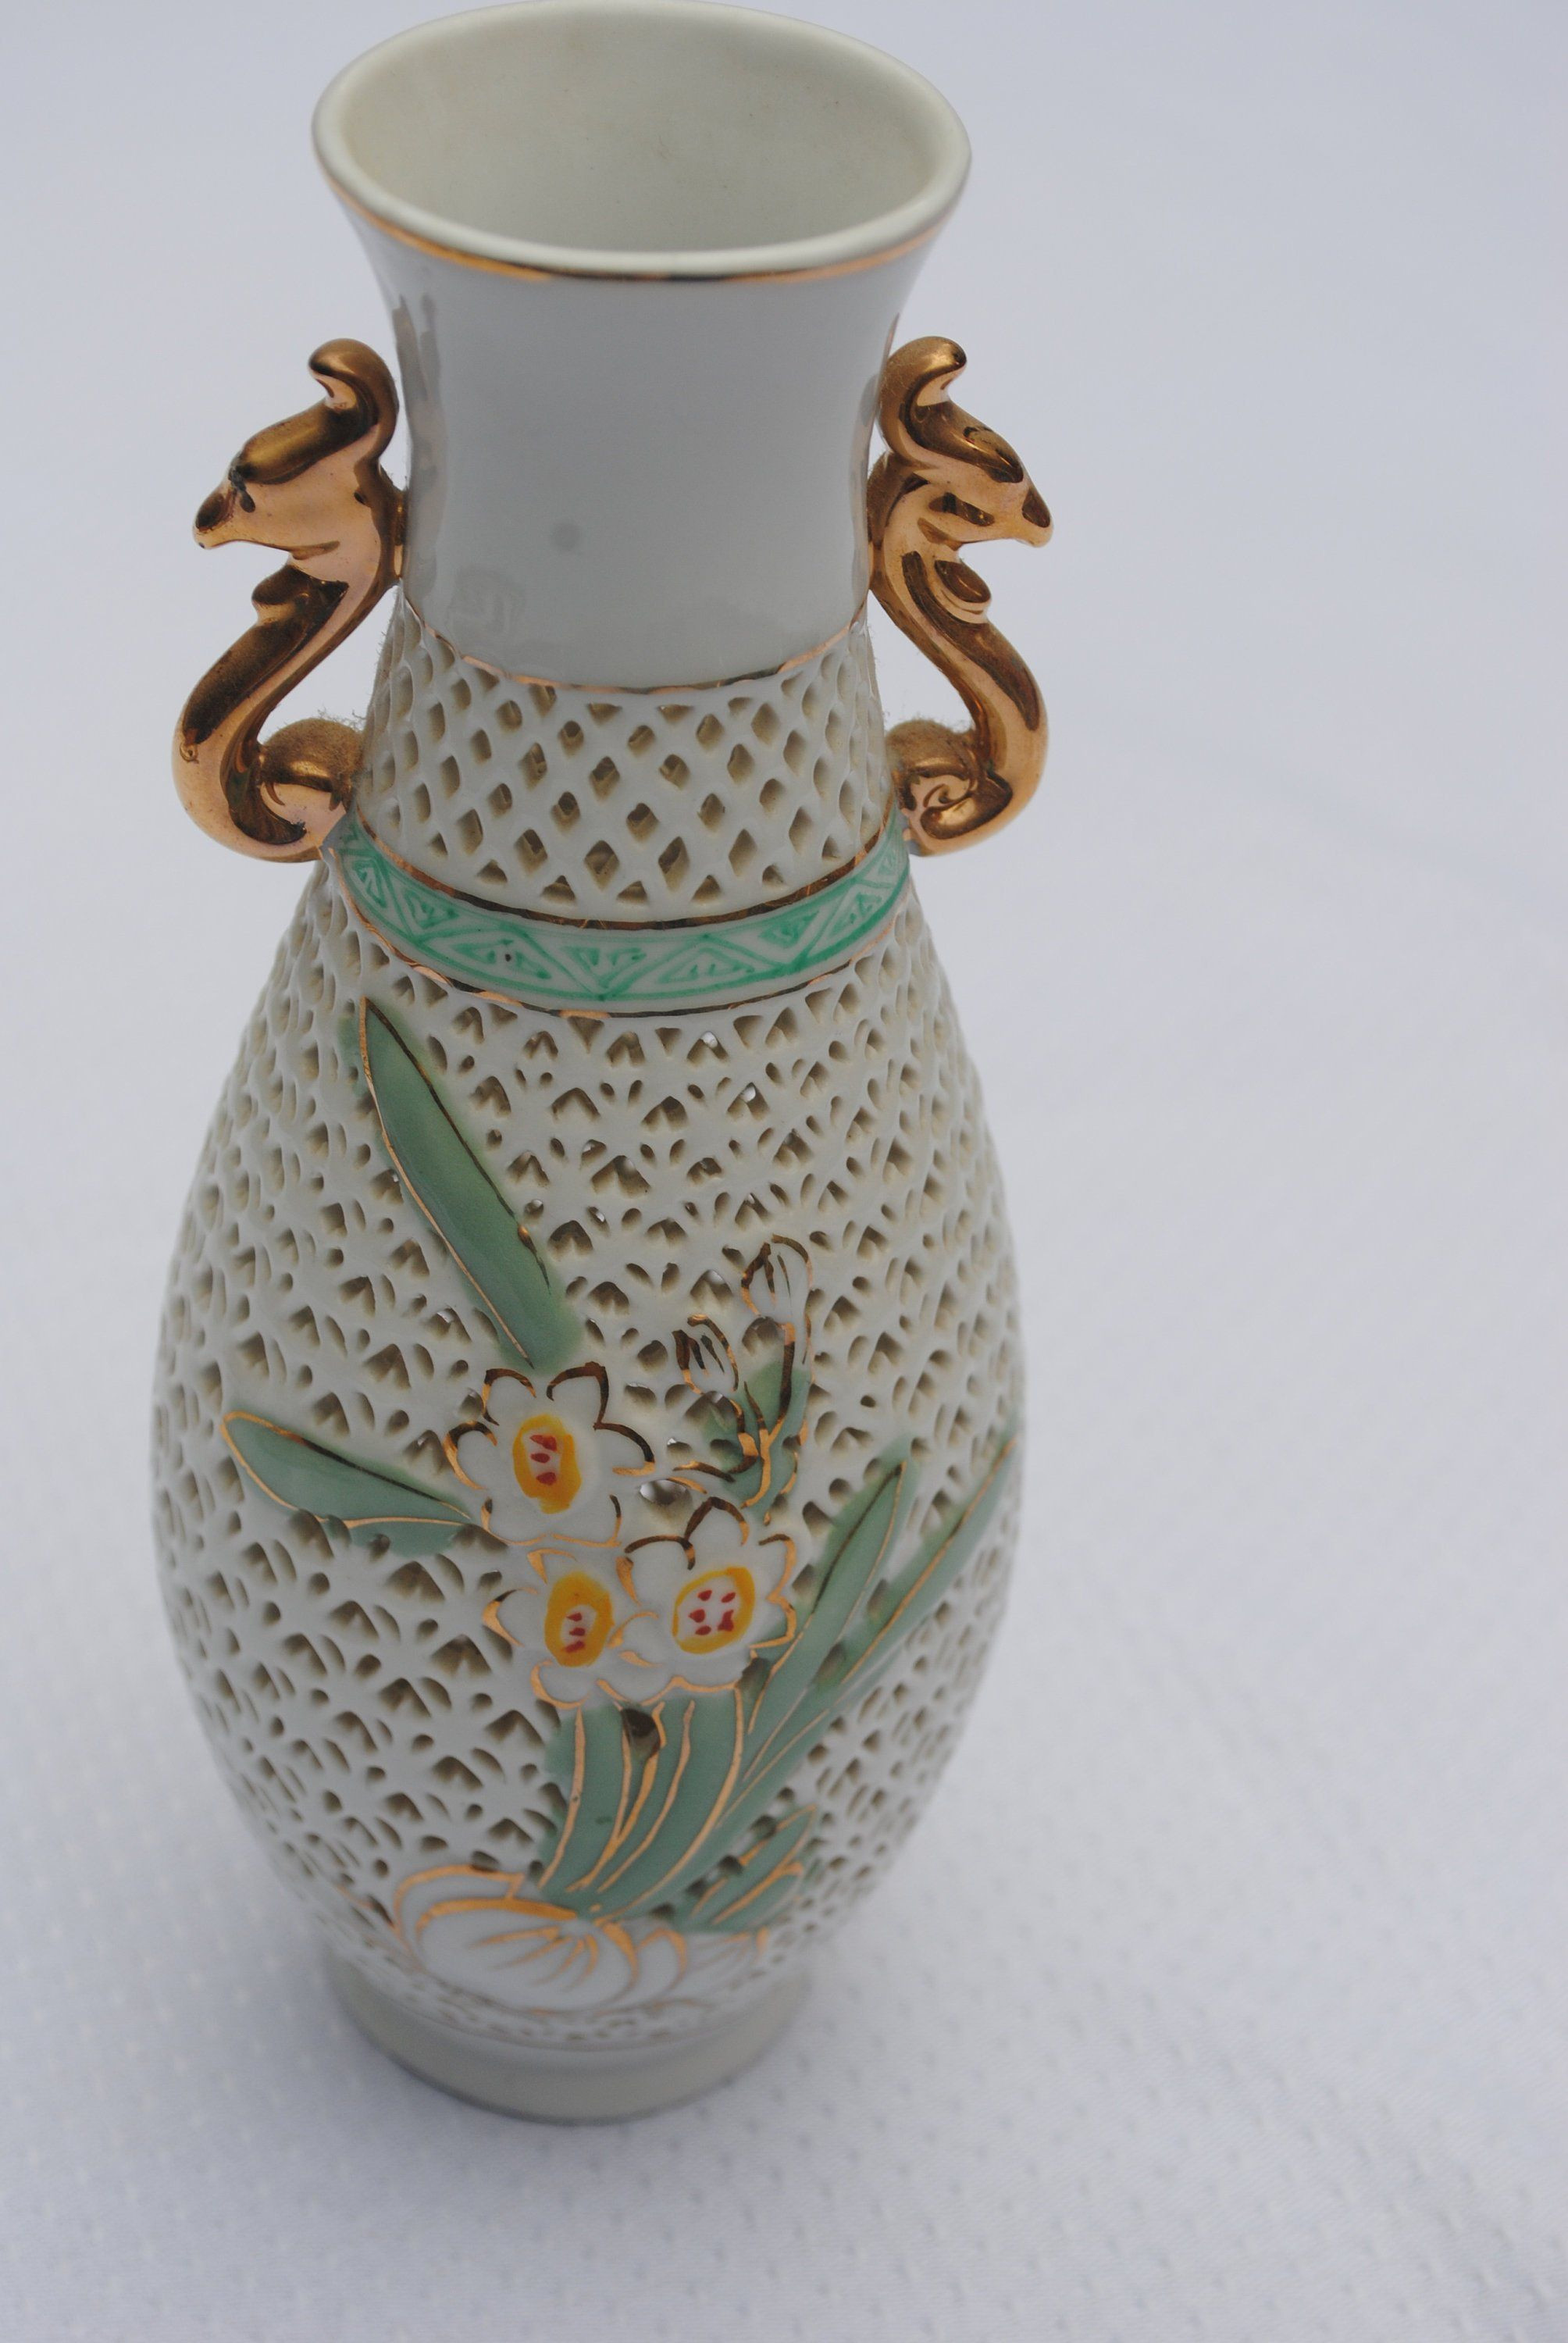 chinese vase lamp base of vintage chinese lattice openwork lamp daffodils basket weave regarding vintage chinese lattice openwork lamp daffodils basket weave reticulated lamp base vase blanc de chine